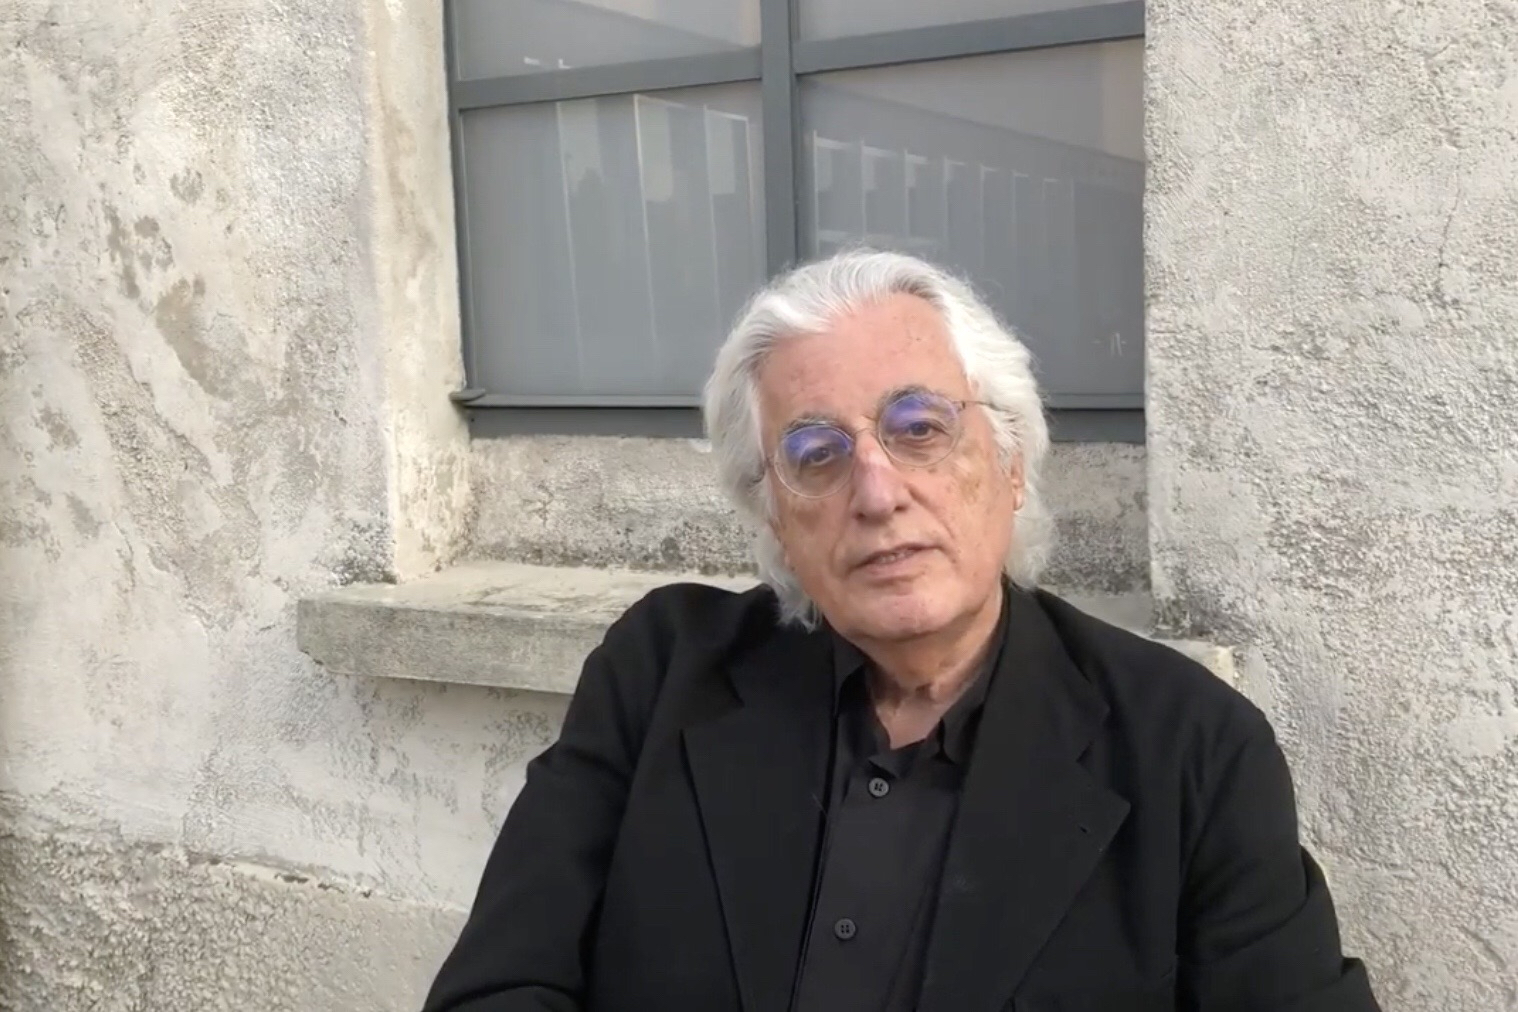 Italian art critic and curator Germano Celant interviewed outside Prada Foundation